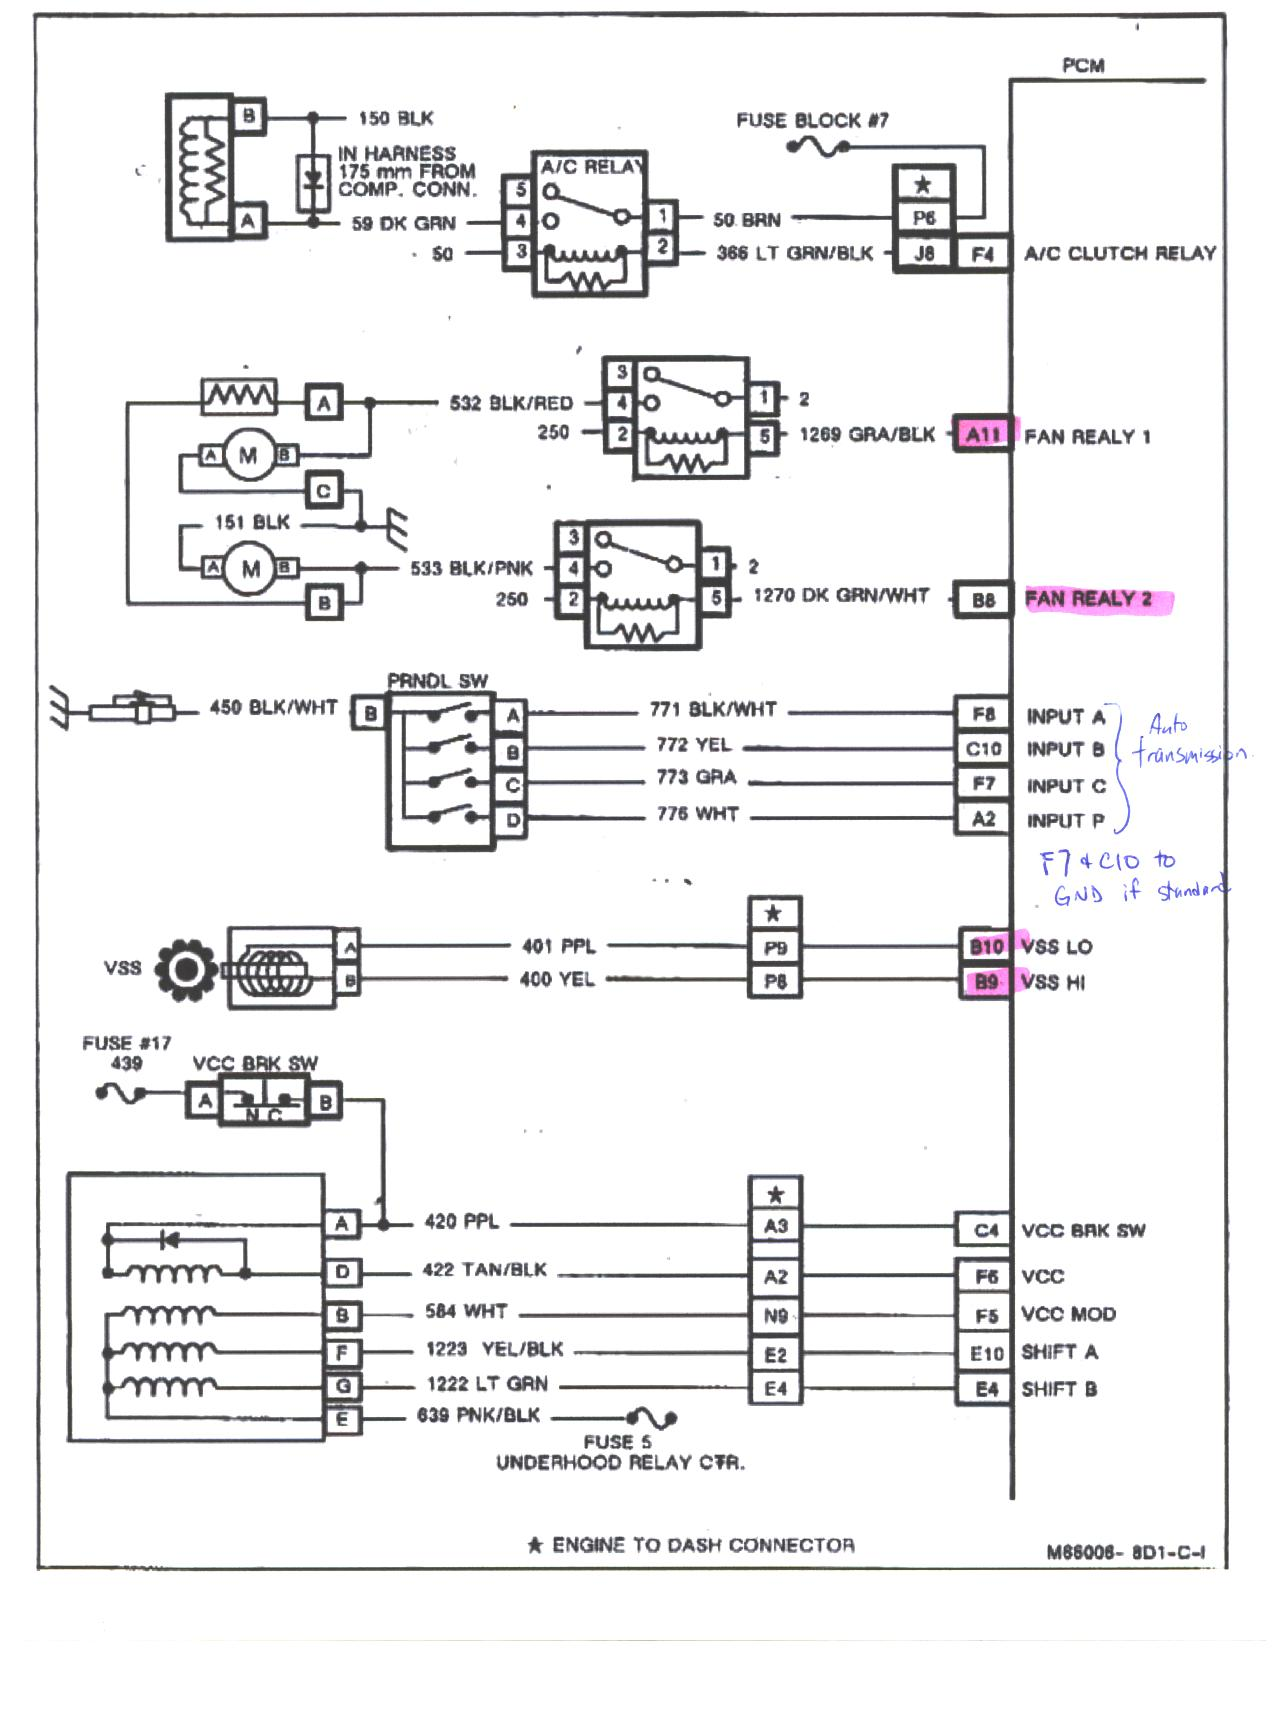 Wiring Diagram Of 4 9 Cadillac Just Another Blog Chevy Venture Van 2001 Eldorado Harness Library Rh 56 Sekten Kritik De Cadilac Ac